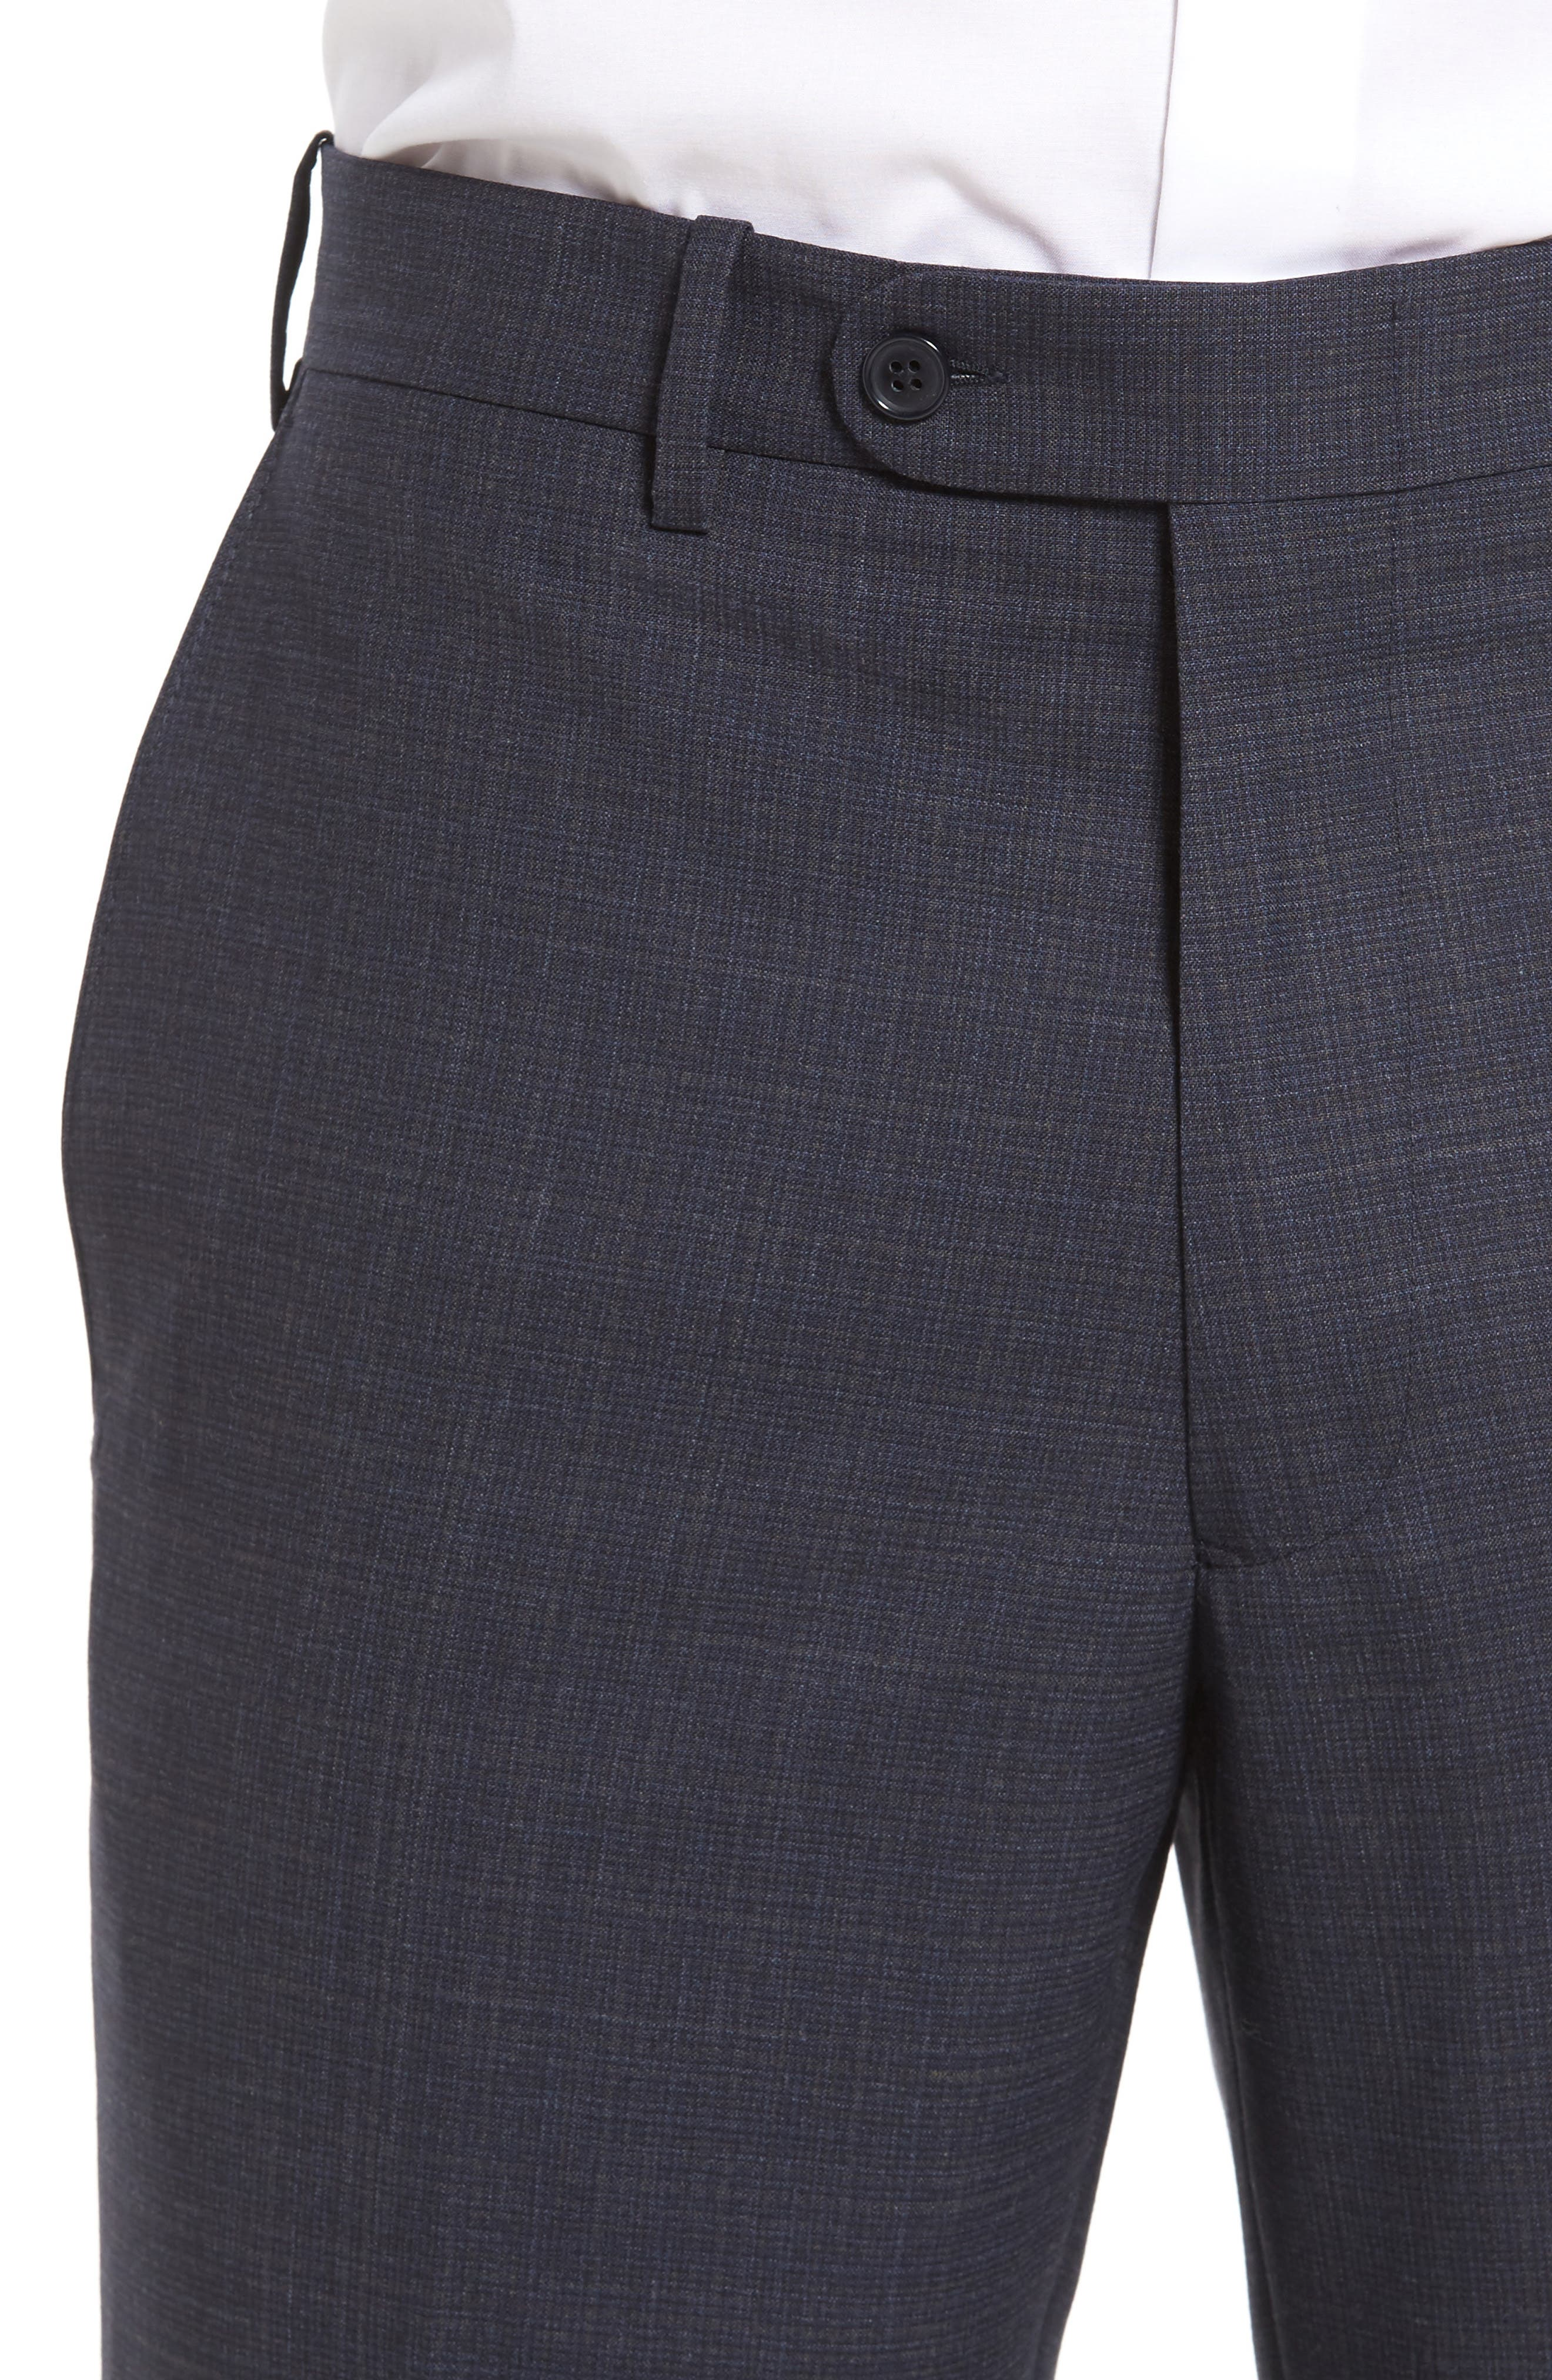 Alternate Image 4  - JB Britches Flat Front Plaid Wool Trousers